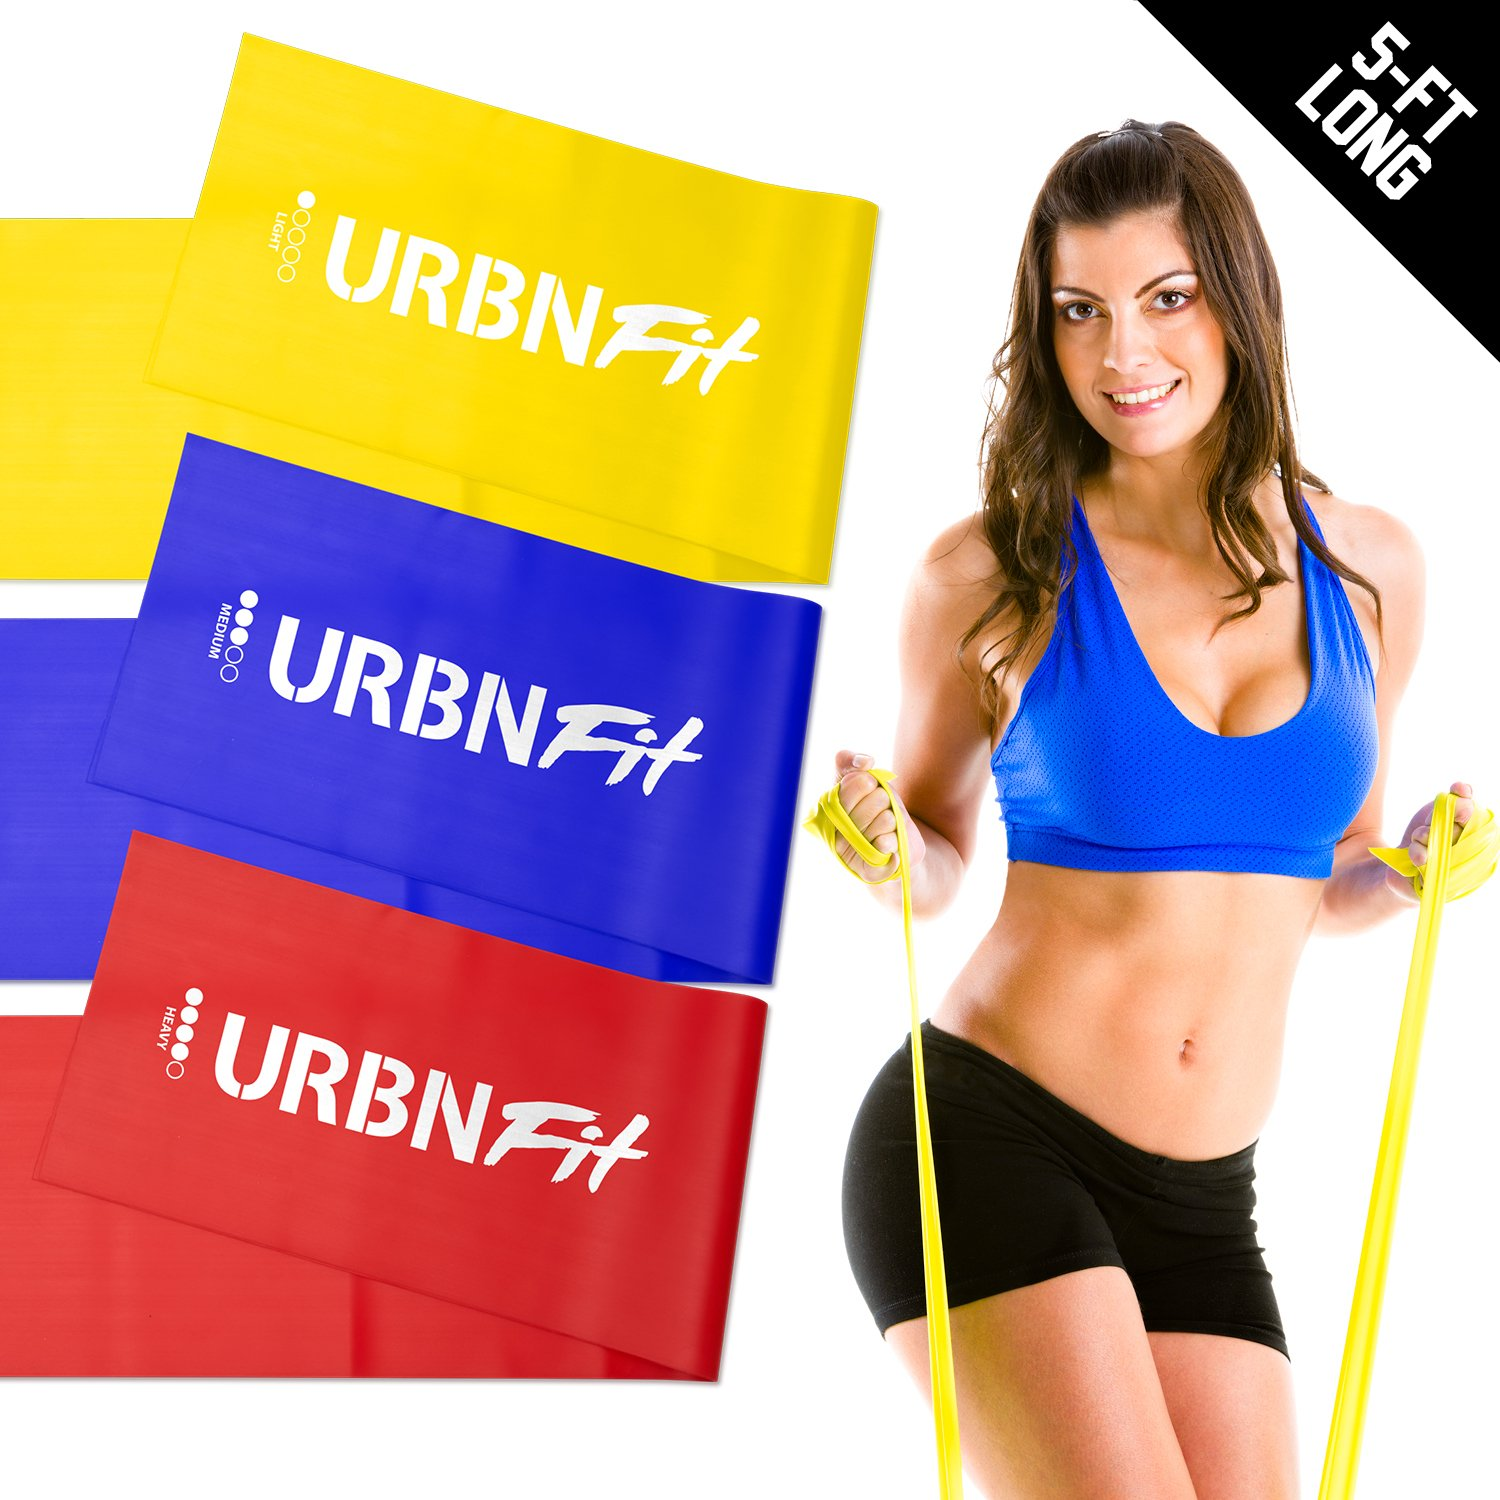 URBNFit Long Fitness Bands (5 Ft) w/Door Anchor - 3 Pack of Resistance Bands for Stretching, Workouts, Rehabilitation